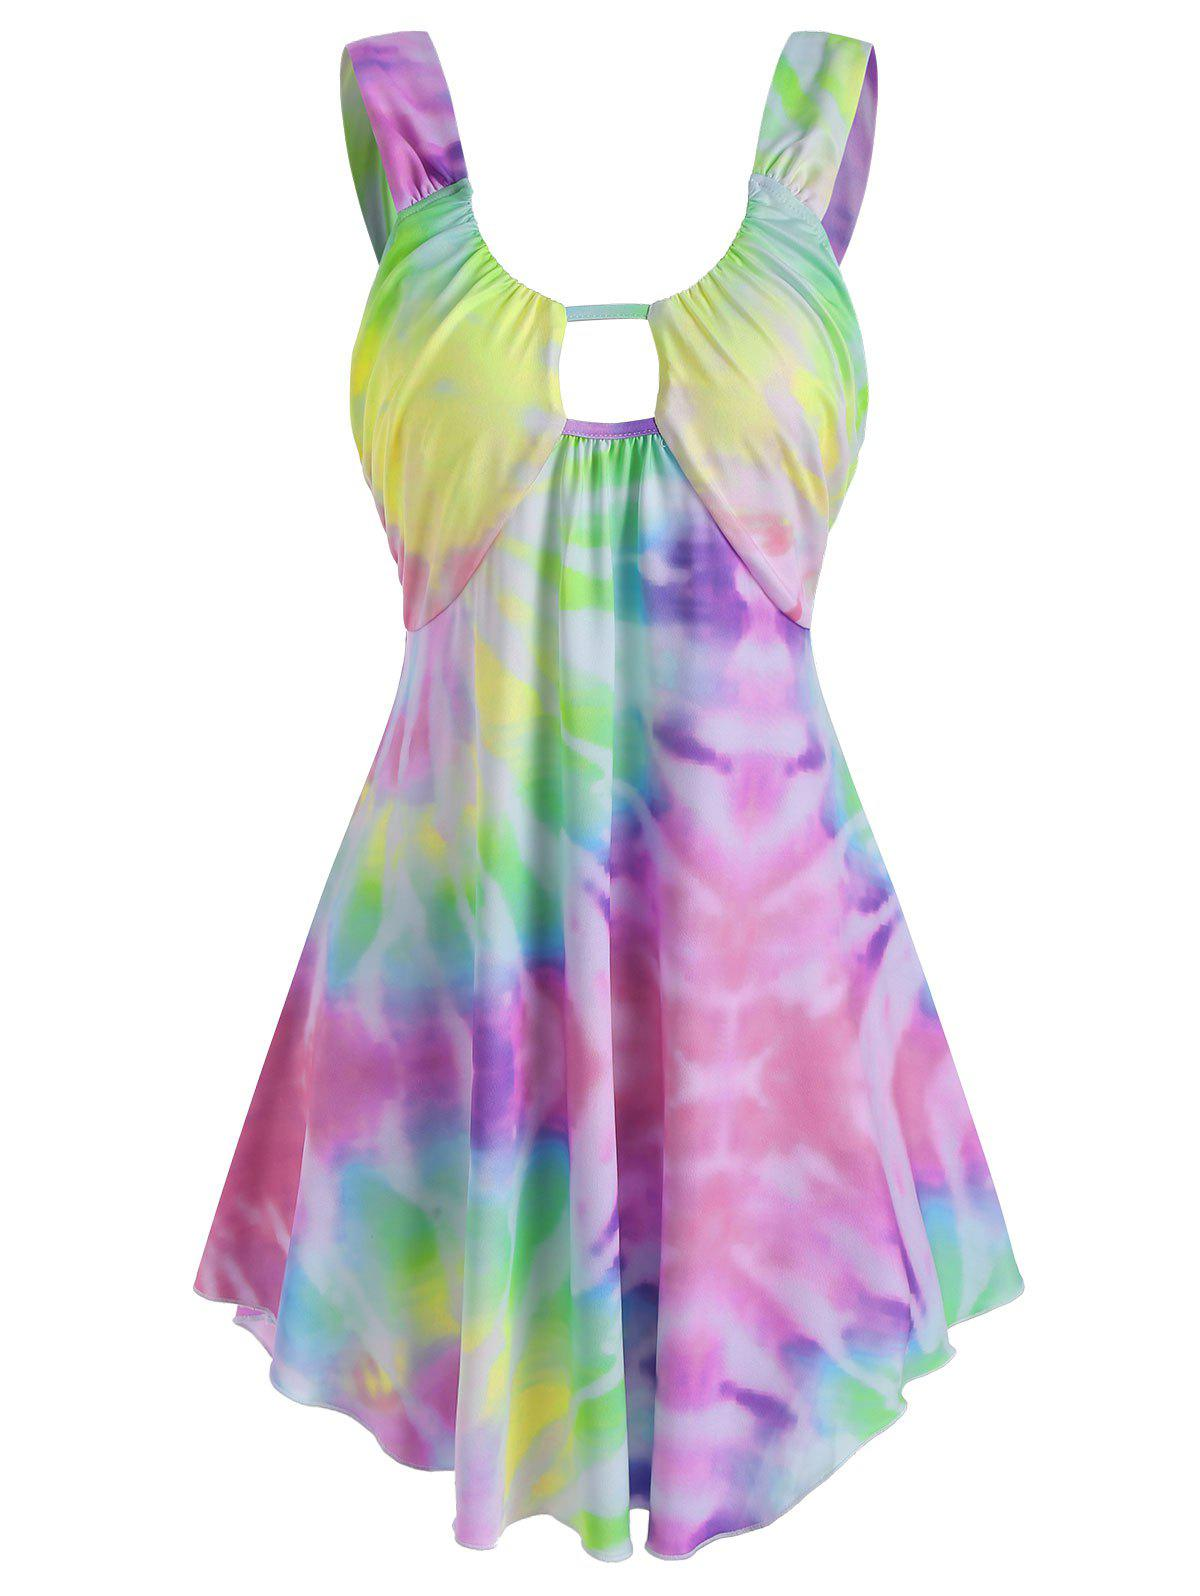 Chic Tie Dye Keyhole Cutout Curved Hem Tank Top